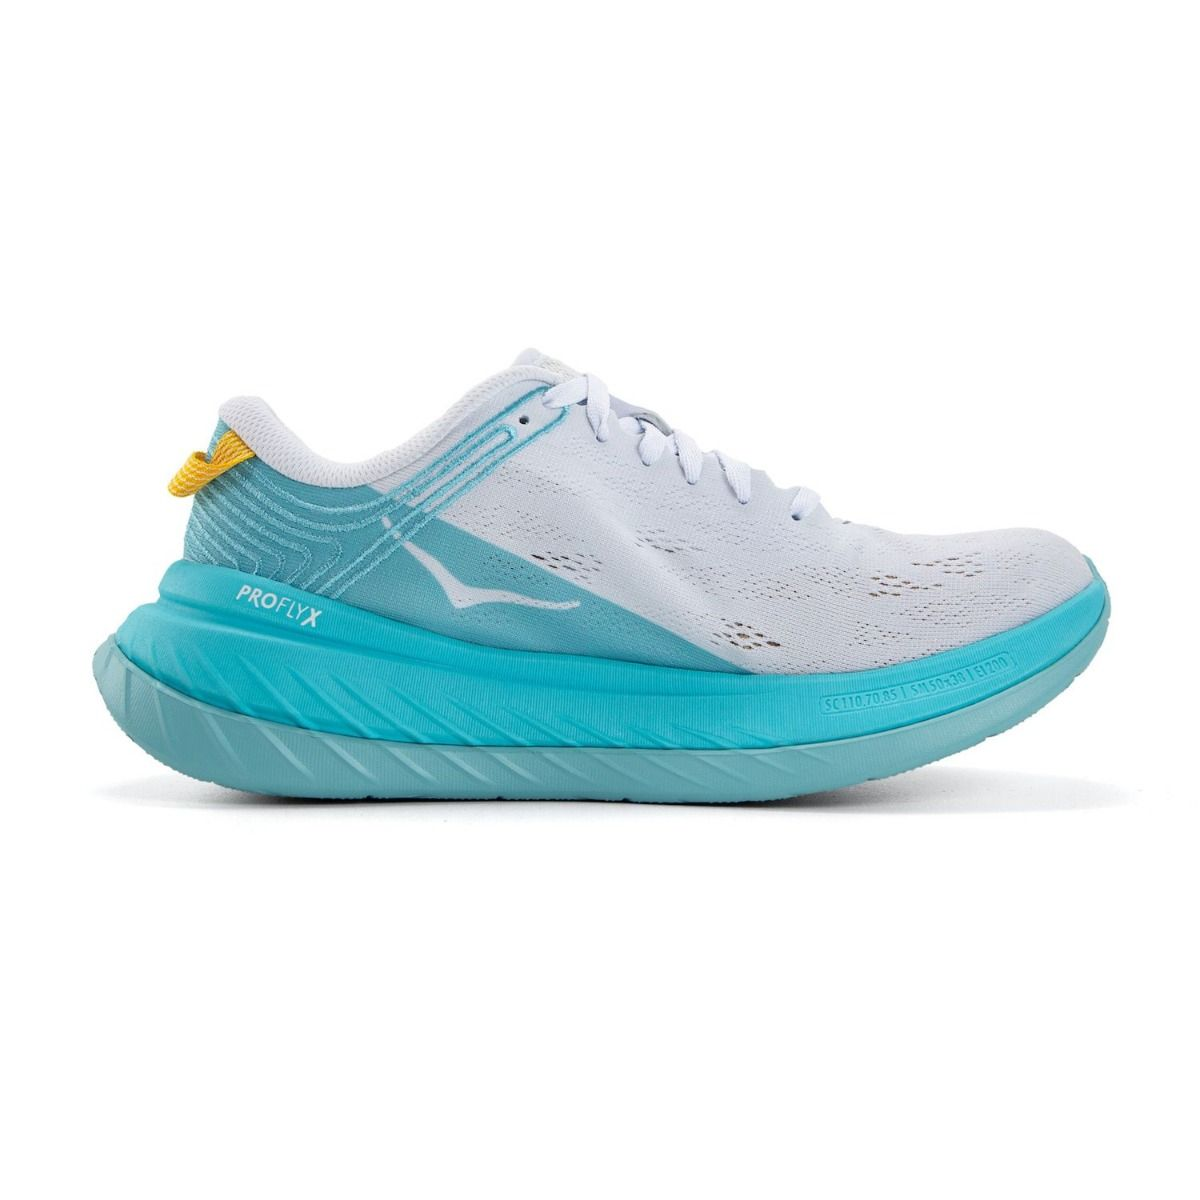 Hoka One One Carbon X dame